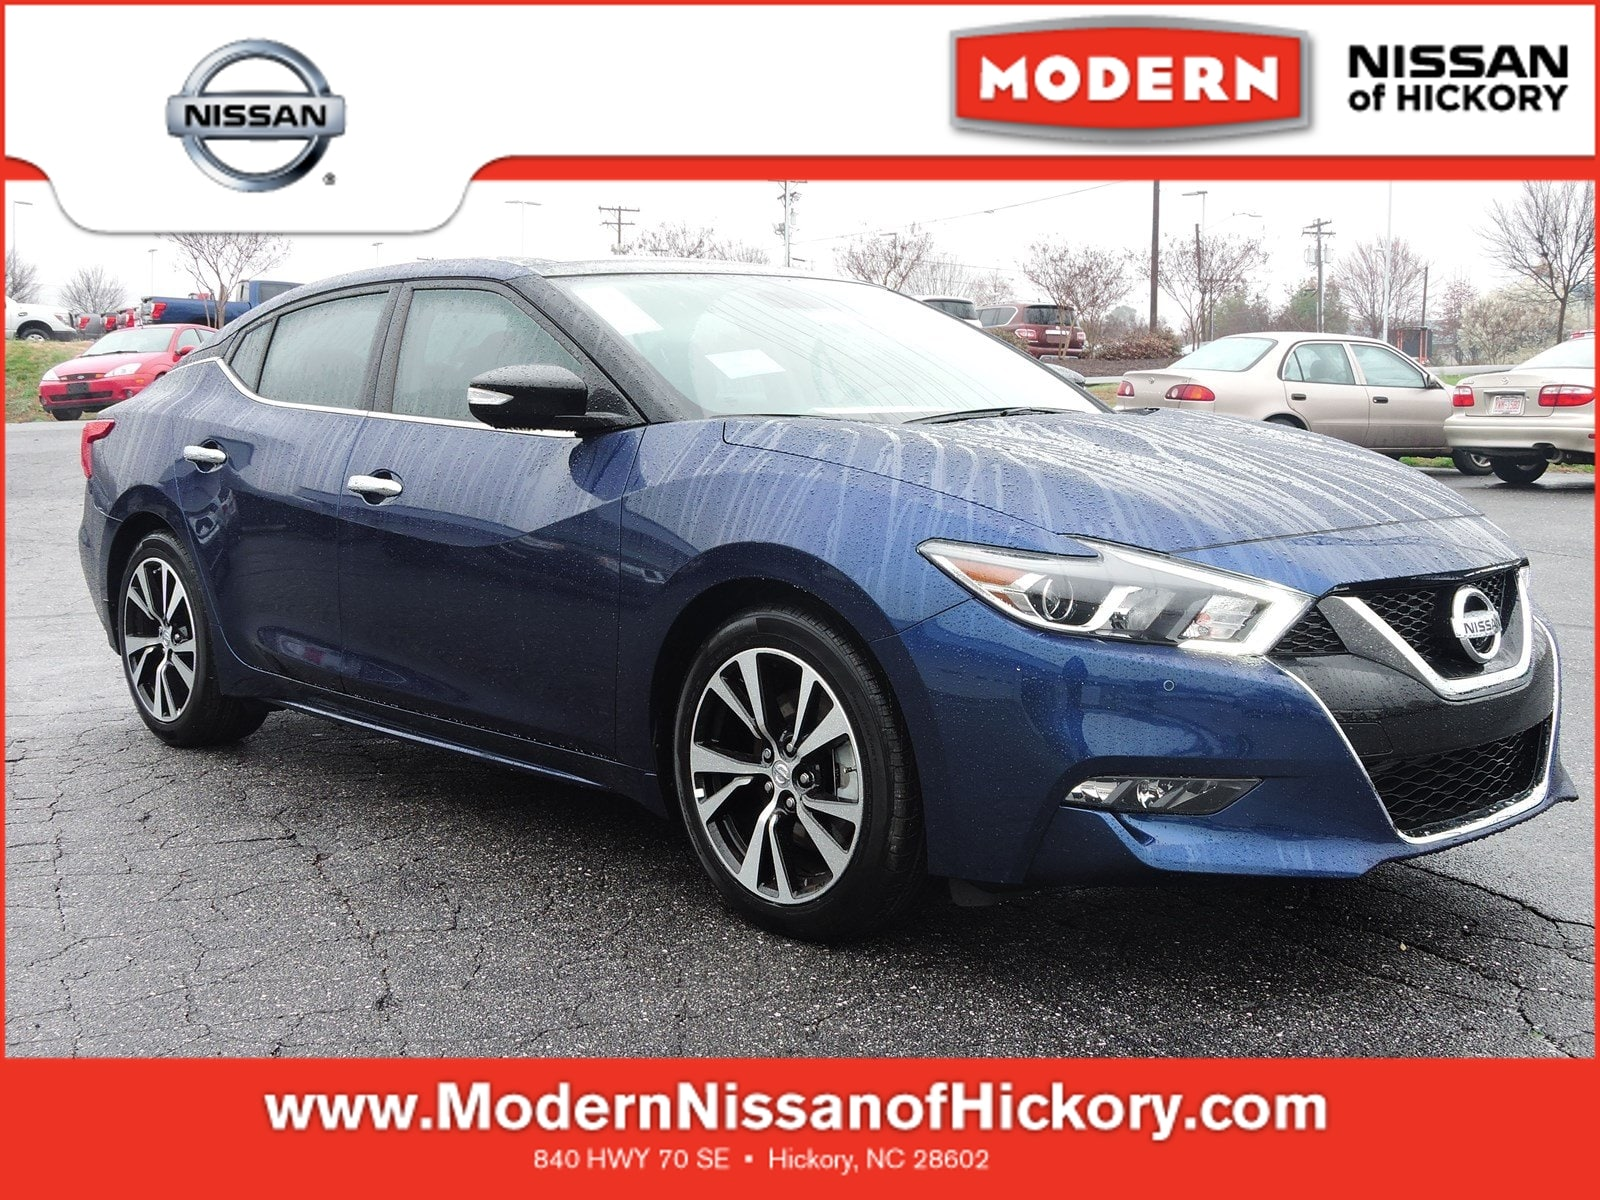 new 2018 nissan maxima modern nissan of hickory